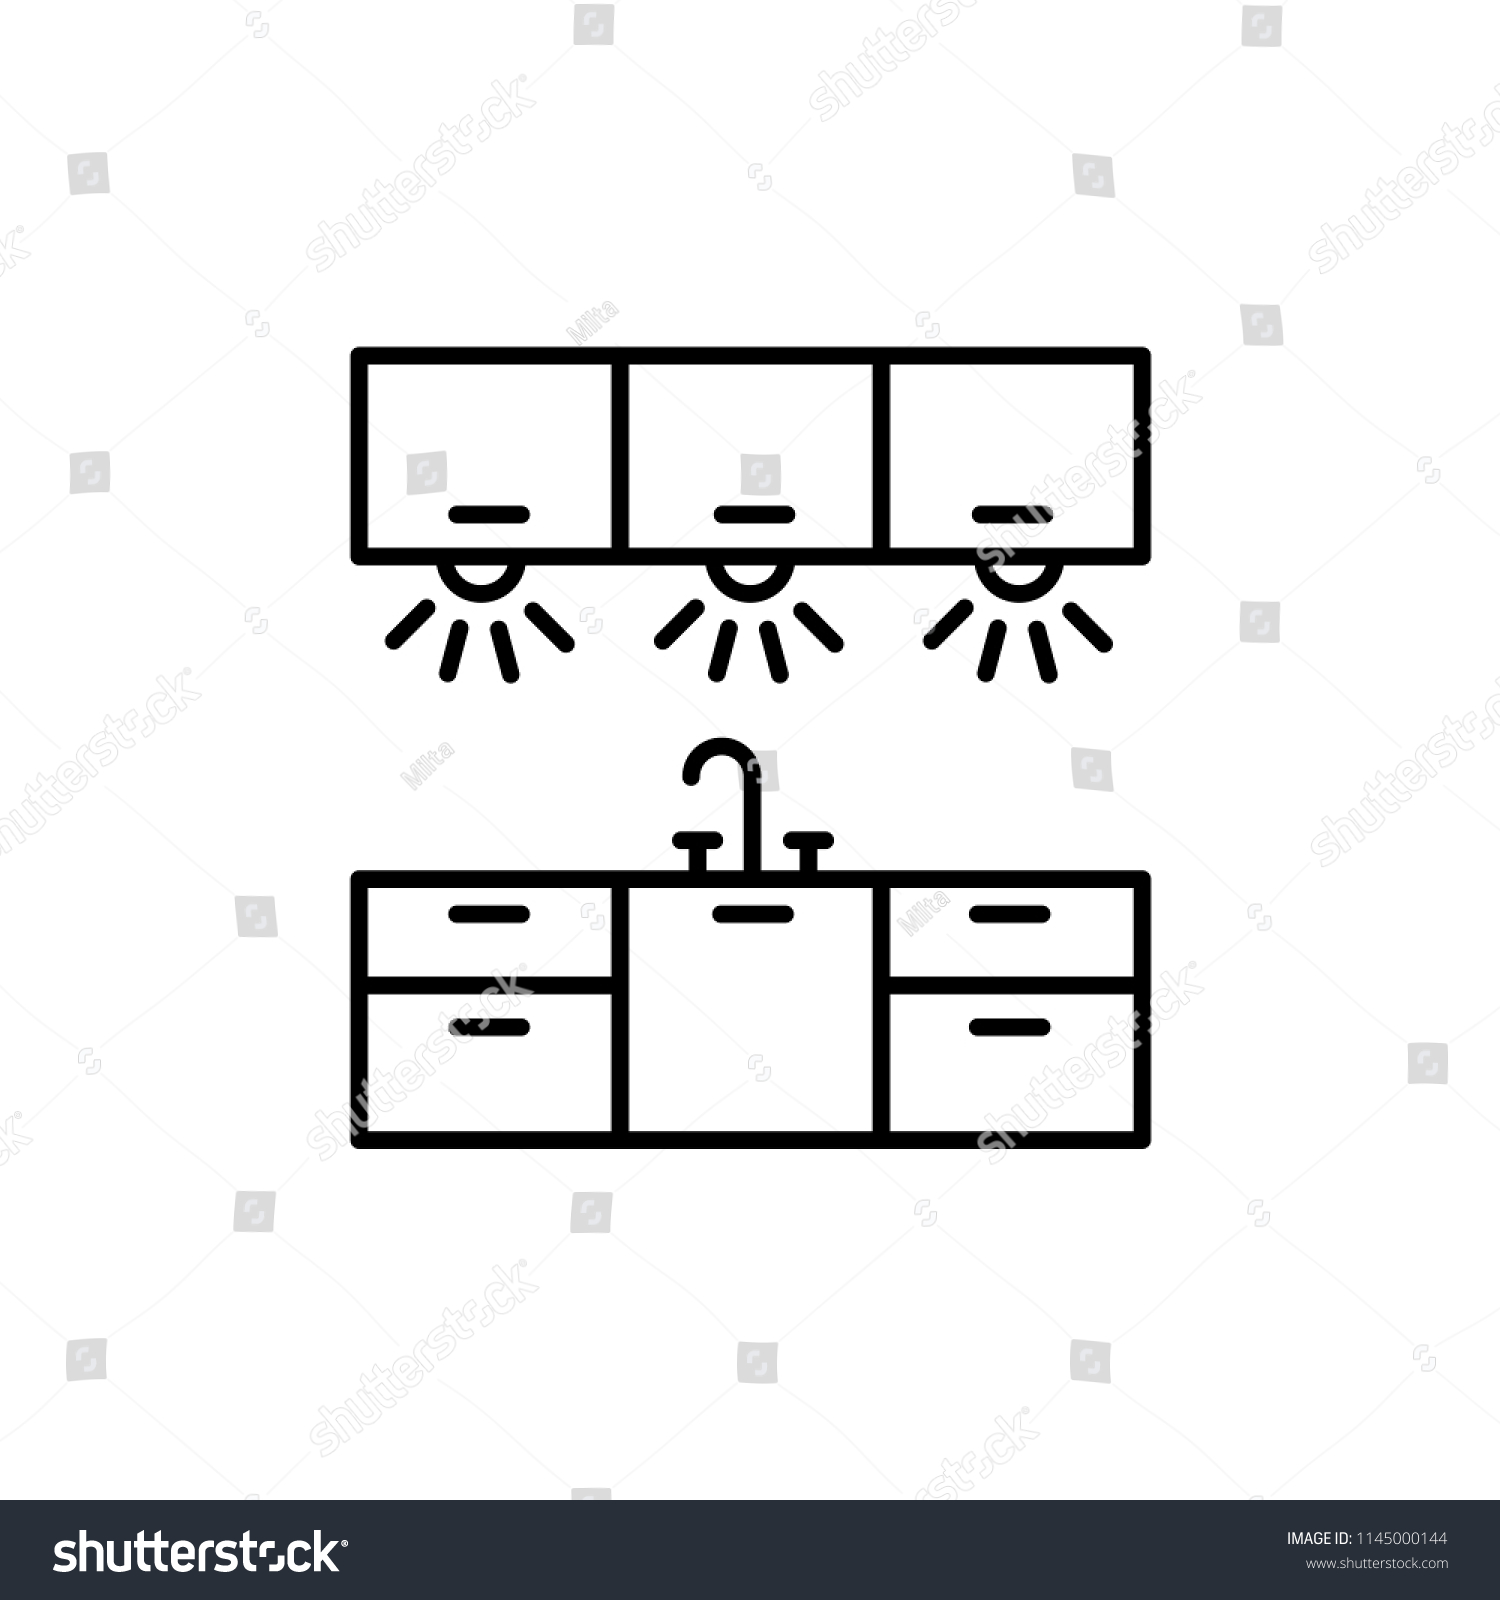 Vector Illustration Cabinet Lighting Line Icon Stock Royalty Diagram For Kitchen Of Workspace Light Isolated Object On